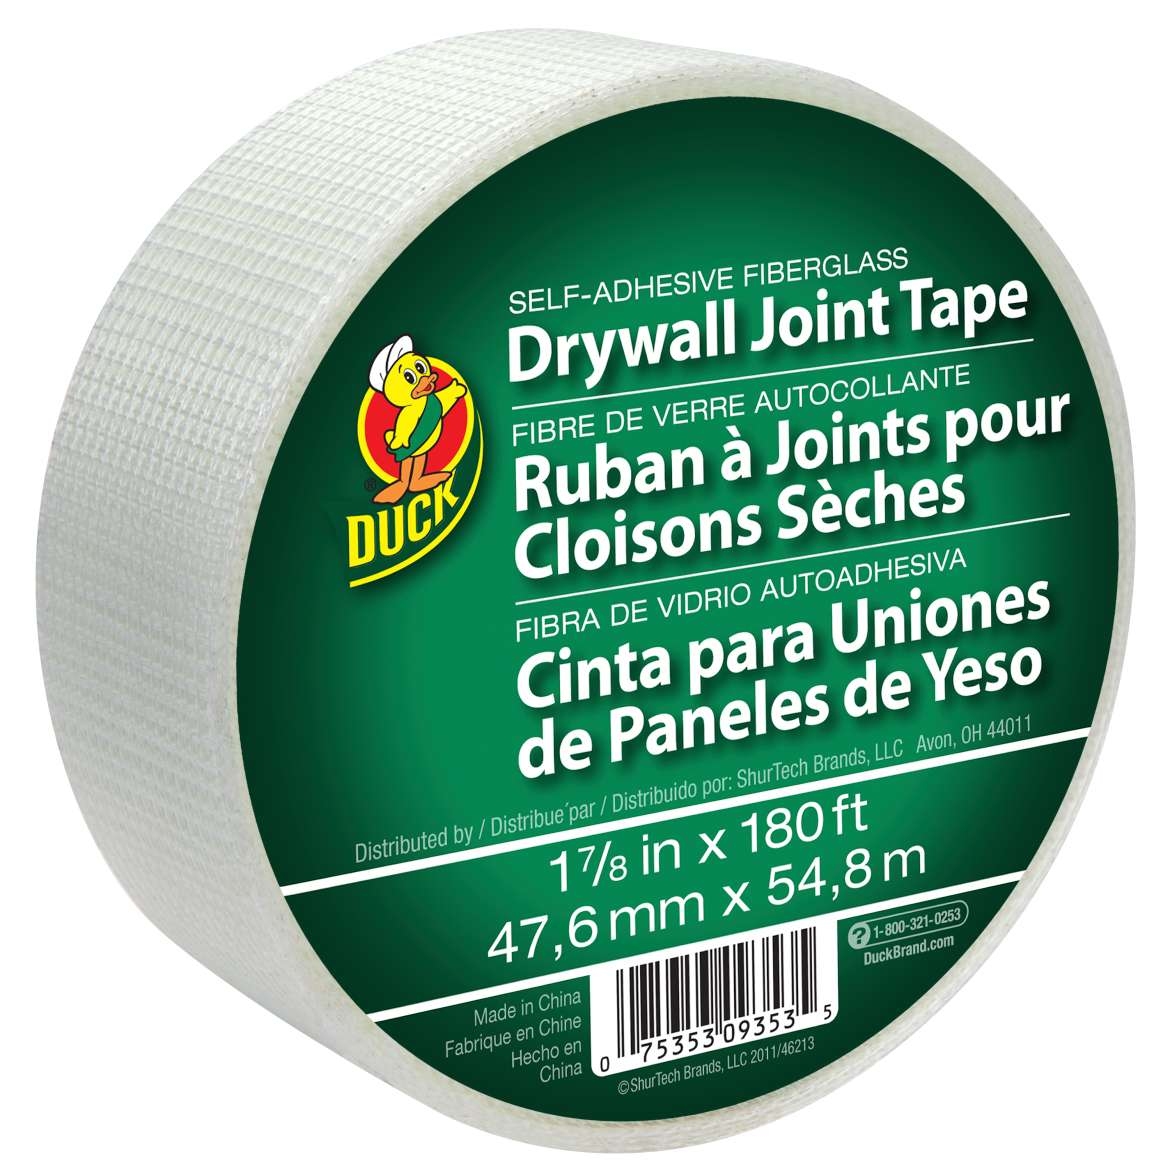 Duck Brand Drywall Joint Tape